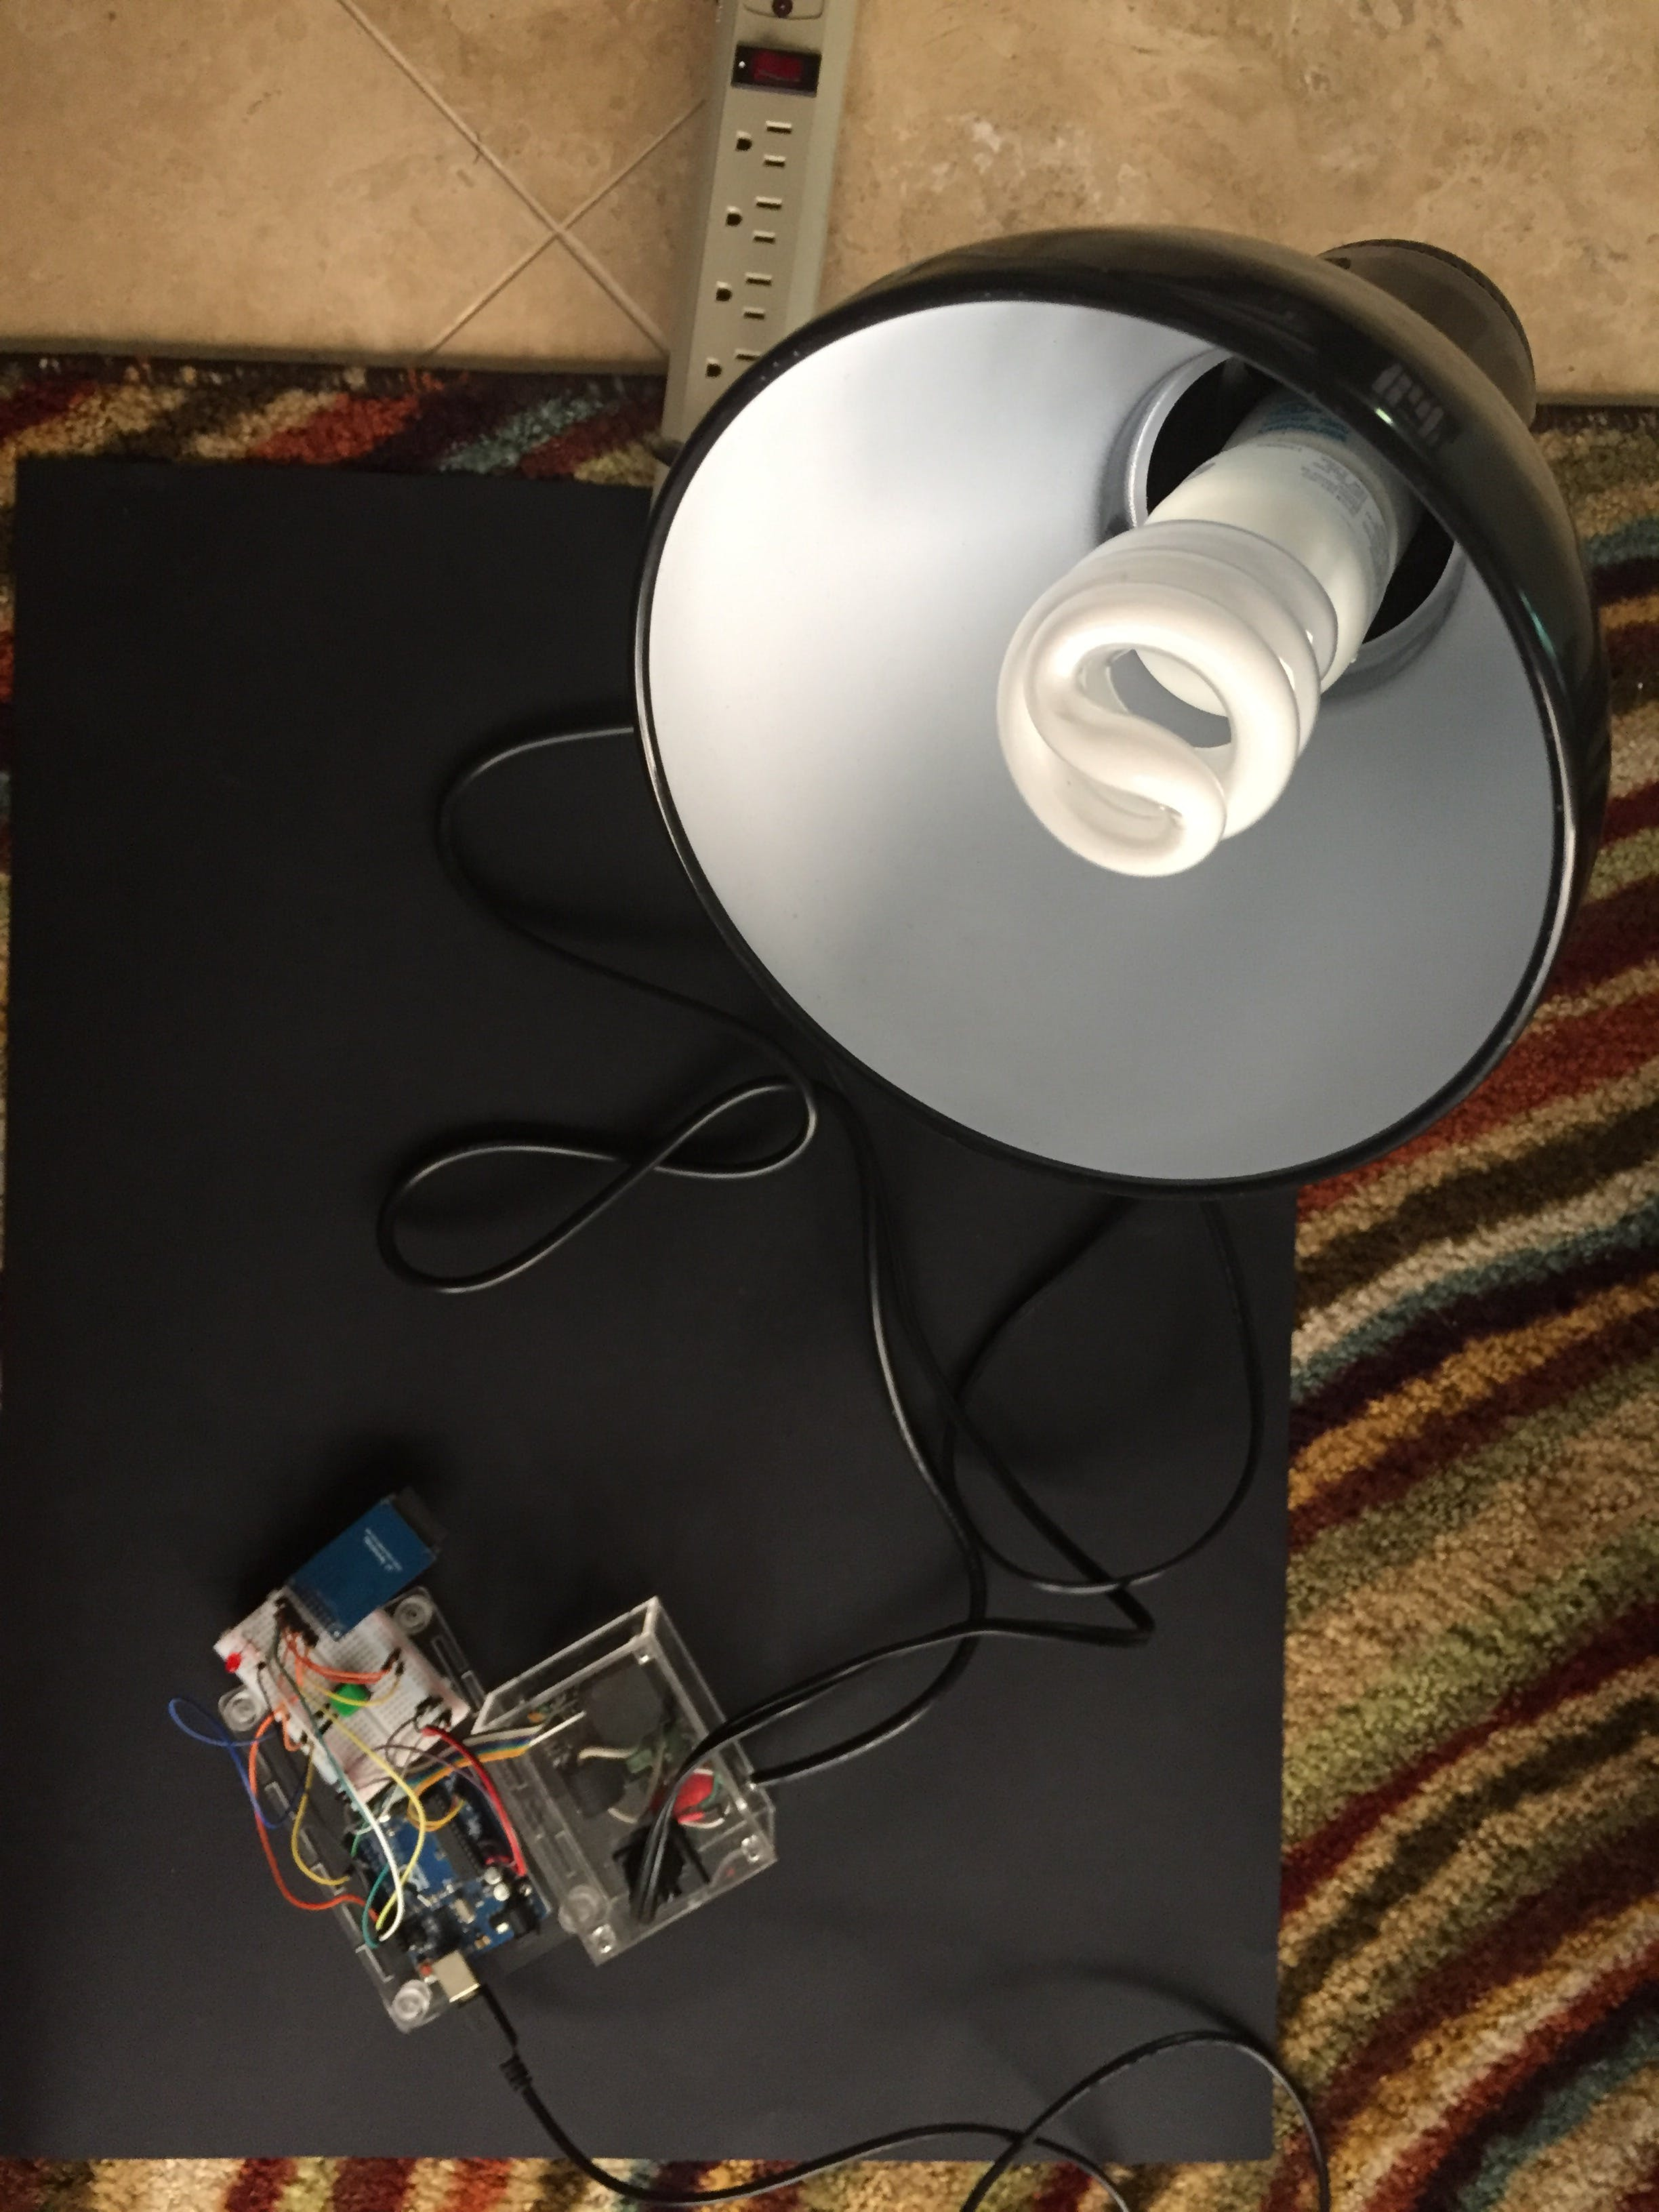 Arduino Energy Logger with Dr. Wattson — with CFL lamp load plugged in